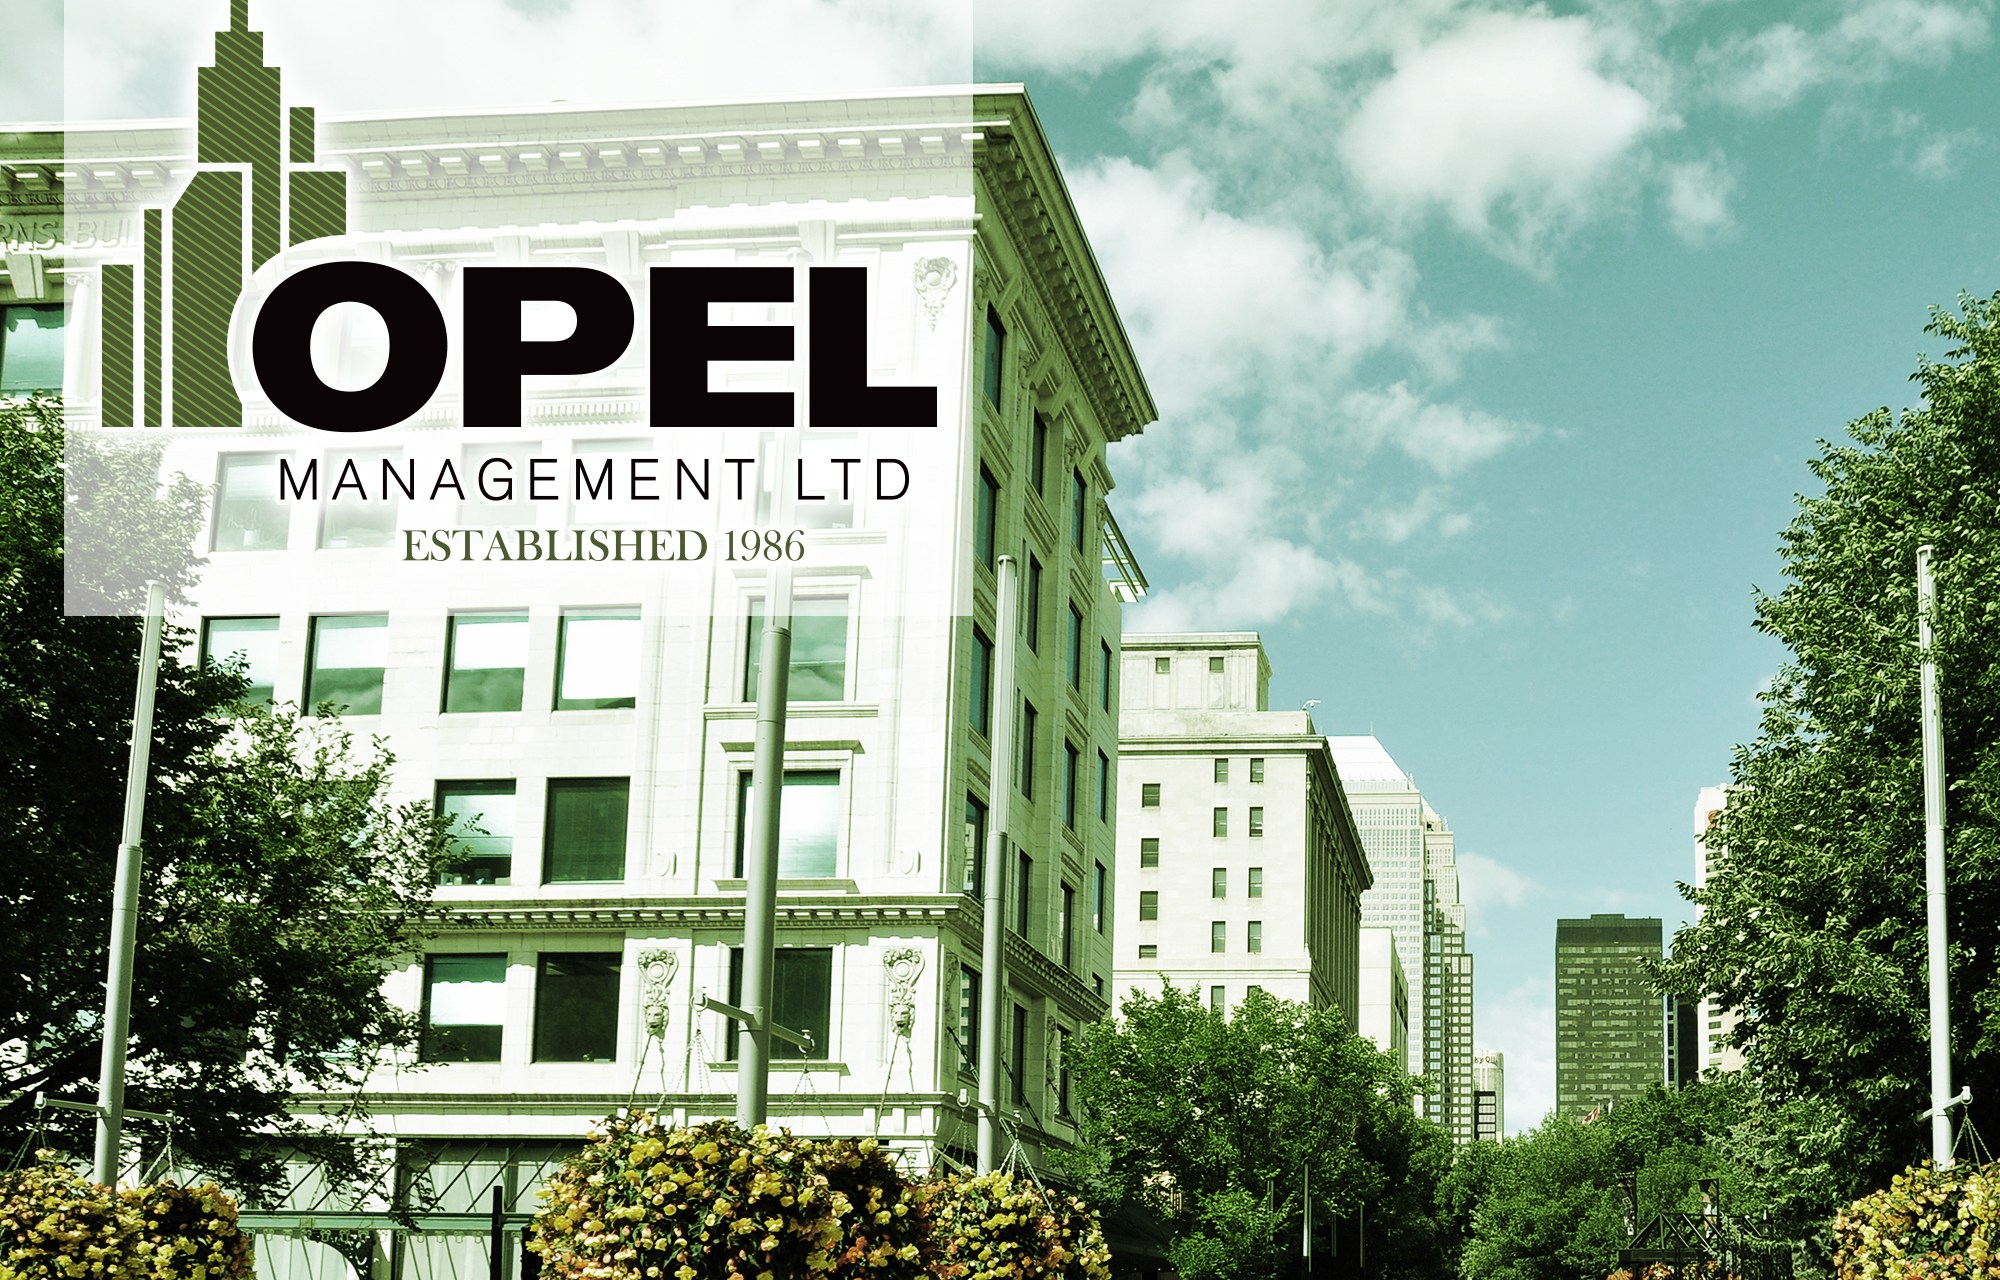 Opel Management is a property management company located in Calgary, Alberta, Canada.